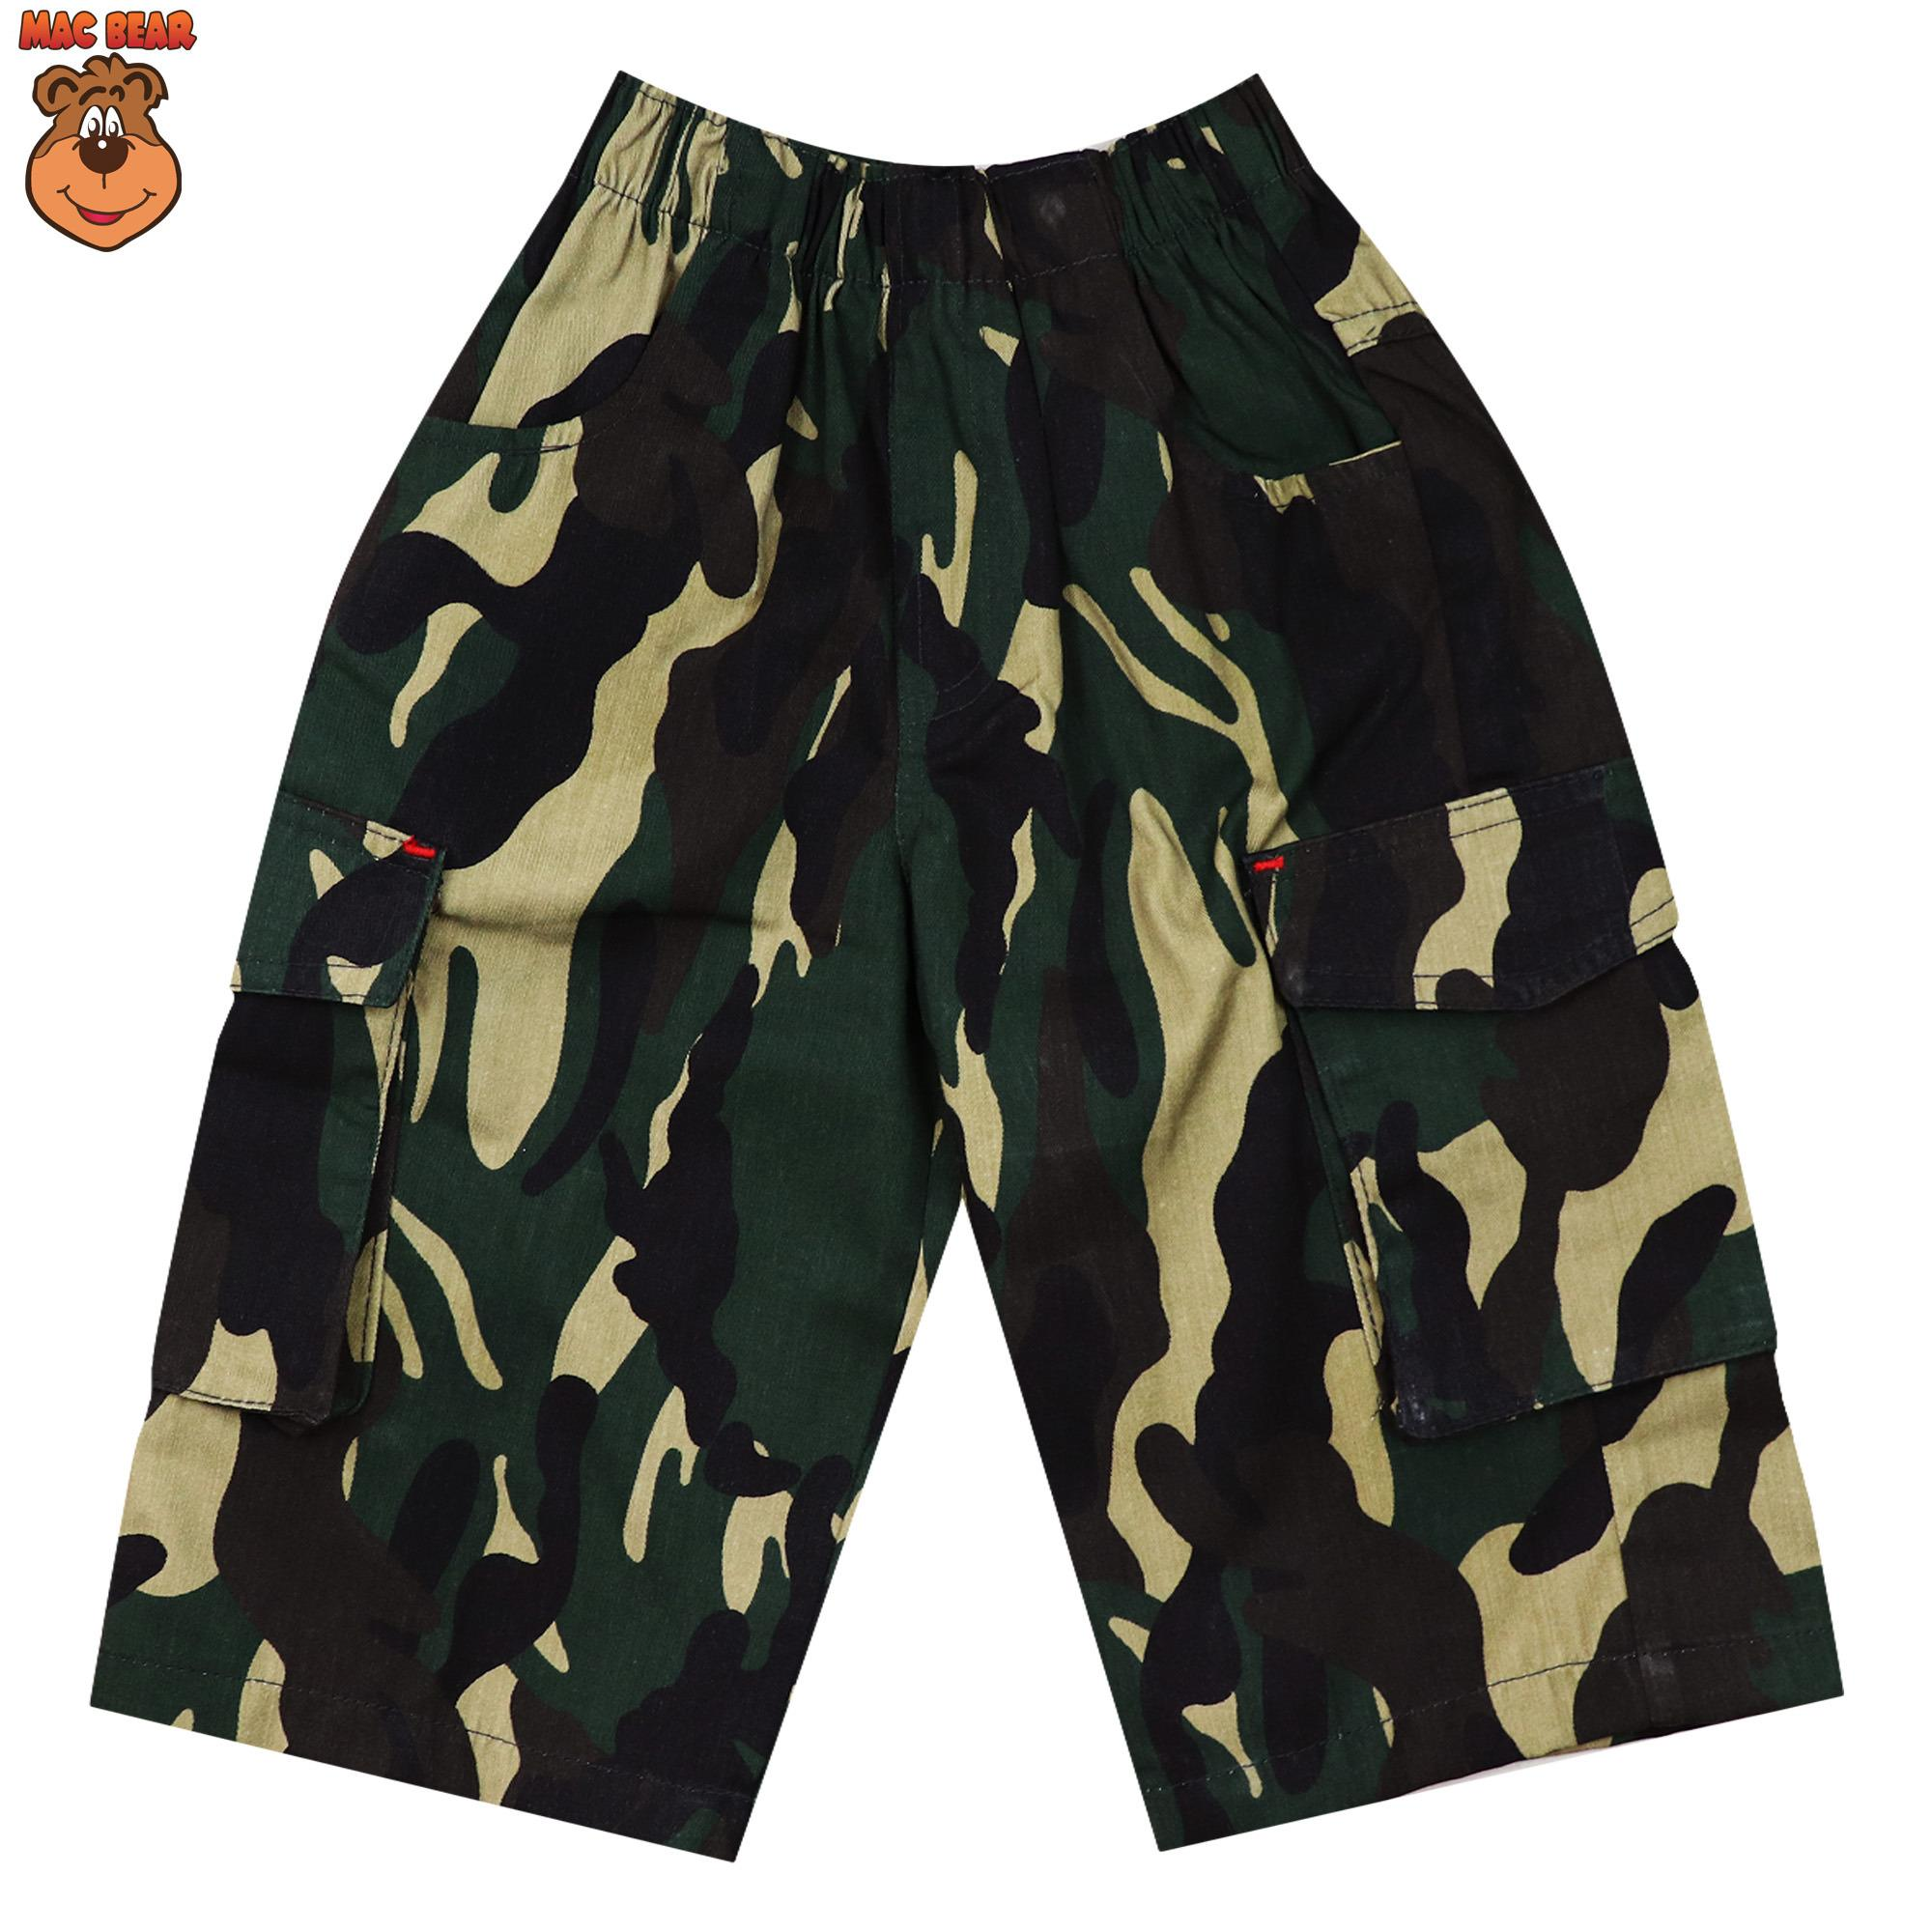 MacBear Kids Celana Anak Cargo Army Boy Pants